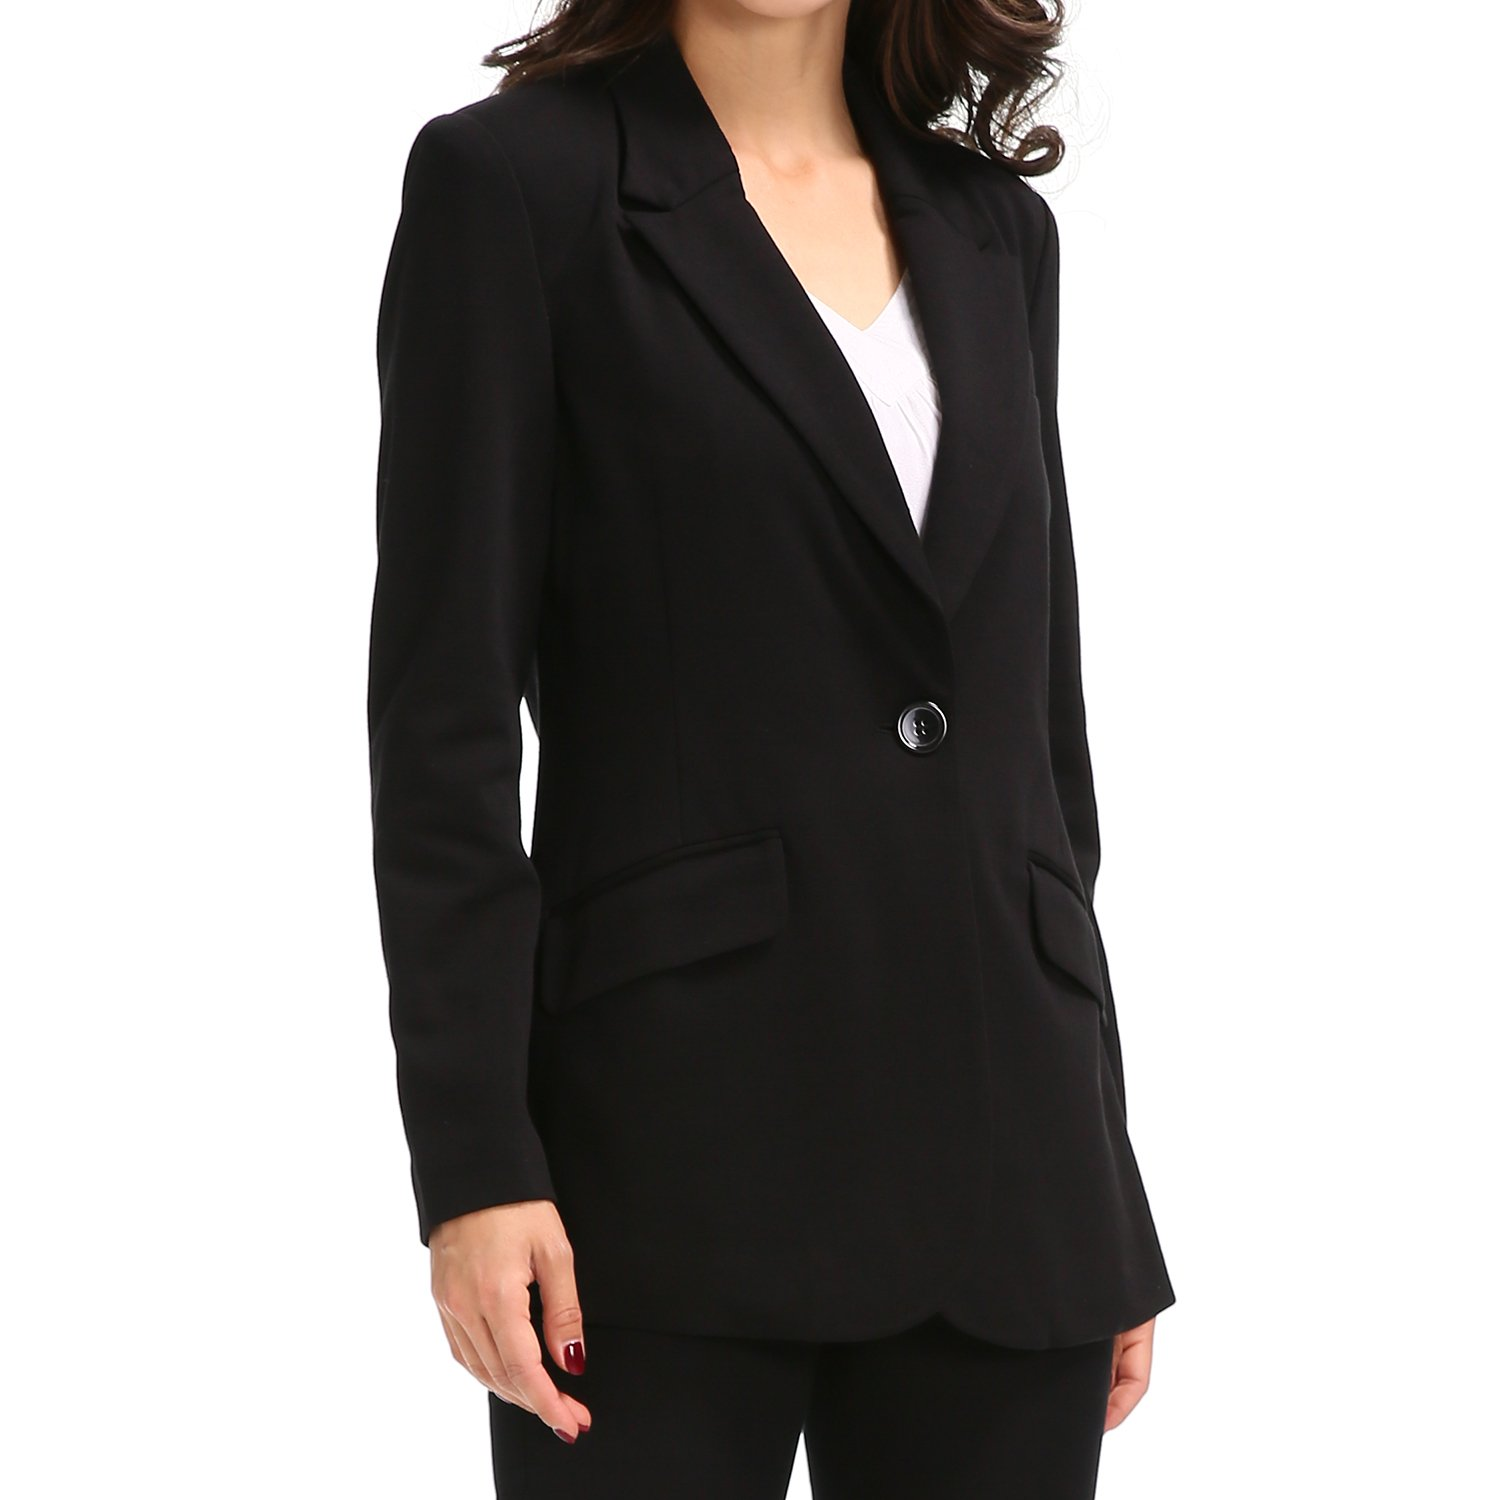 Tasta Women's Single Button Blazer Jacket Business Suit Long Sleeve Coat with Padded Shoulders (US 4, Long Style Black)